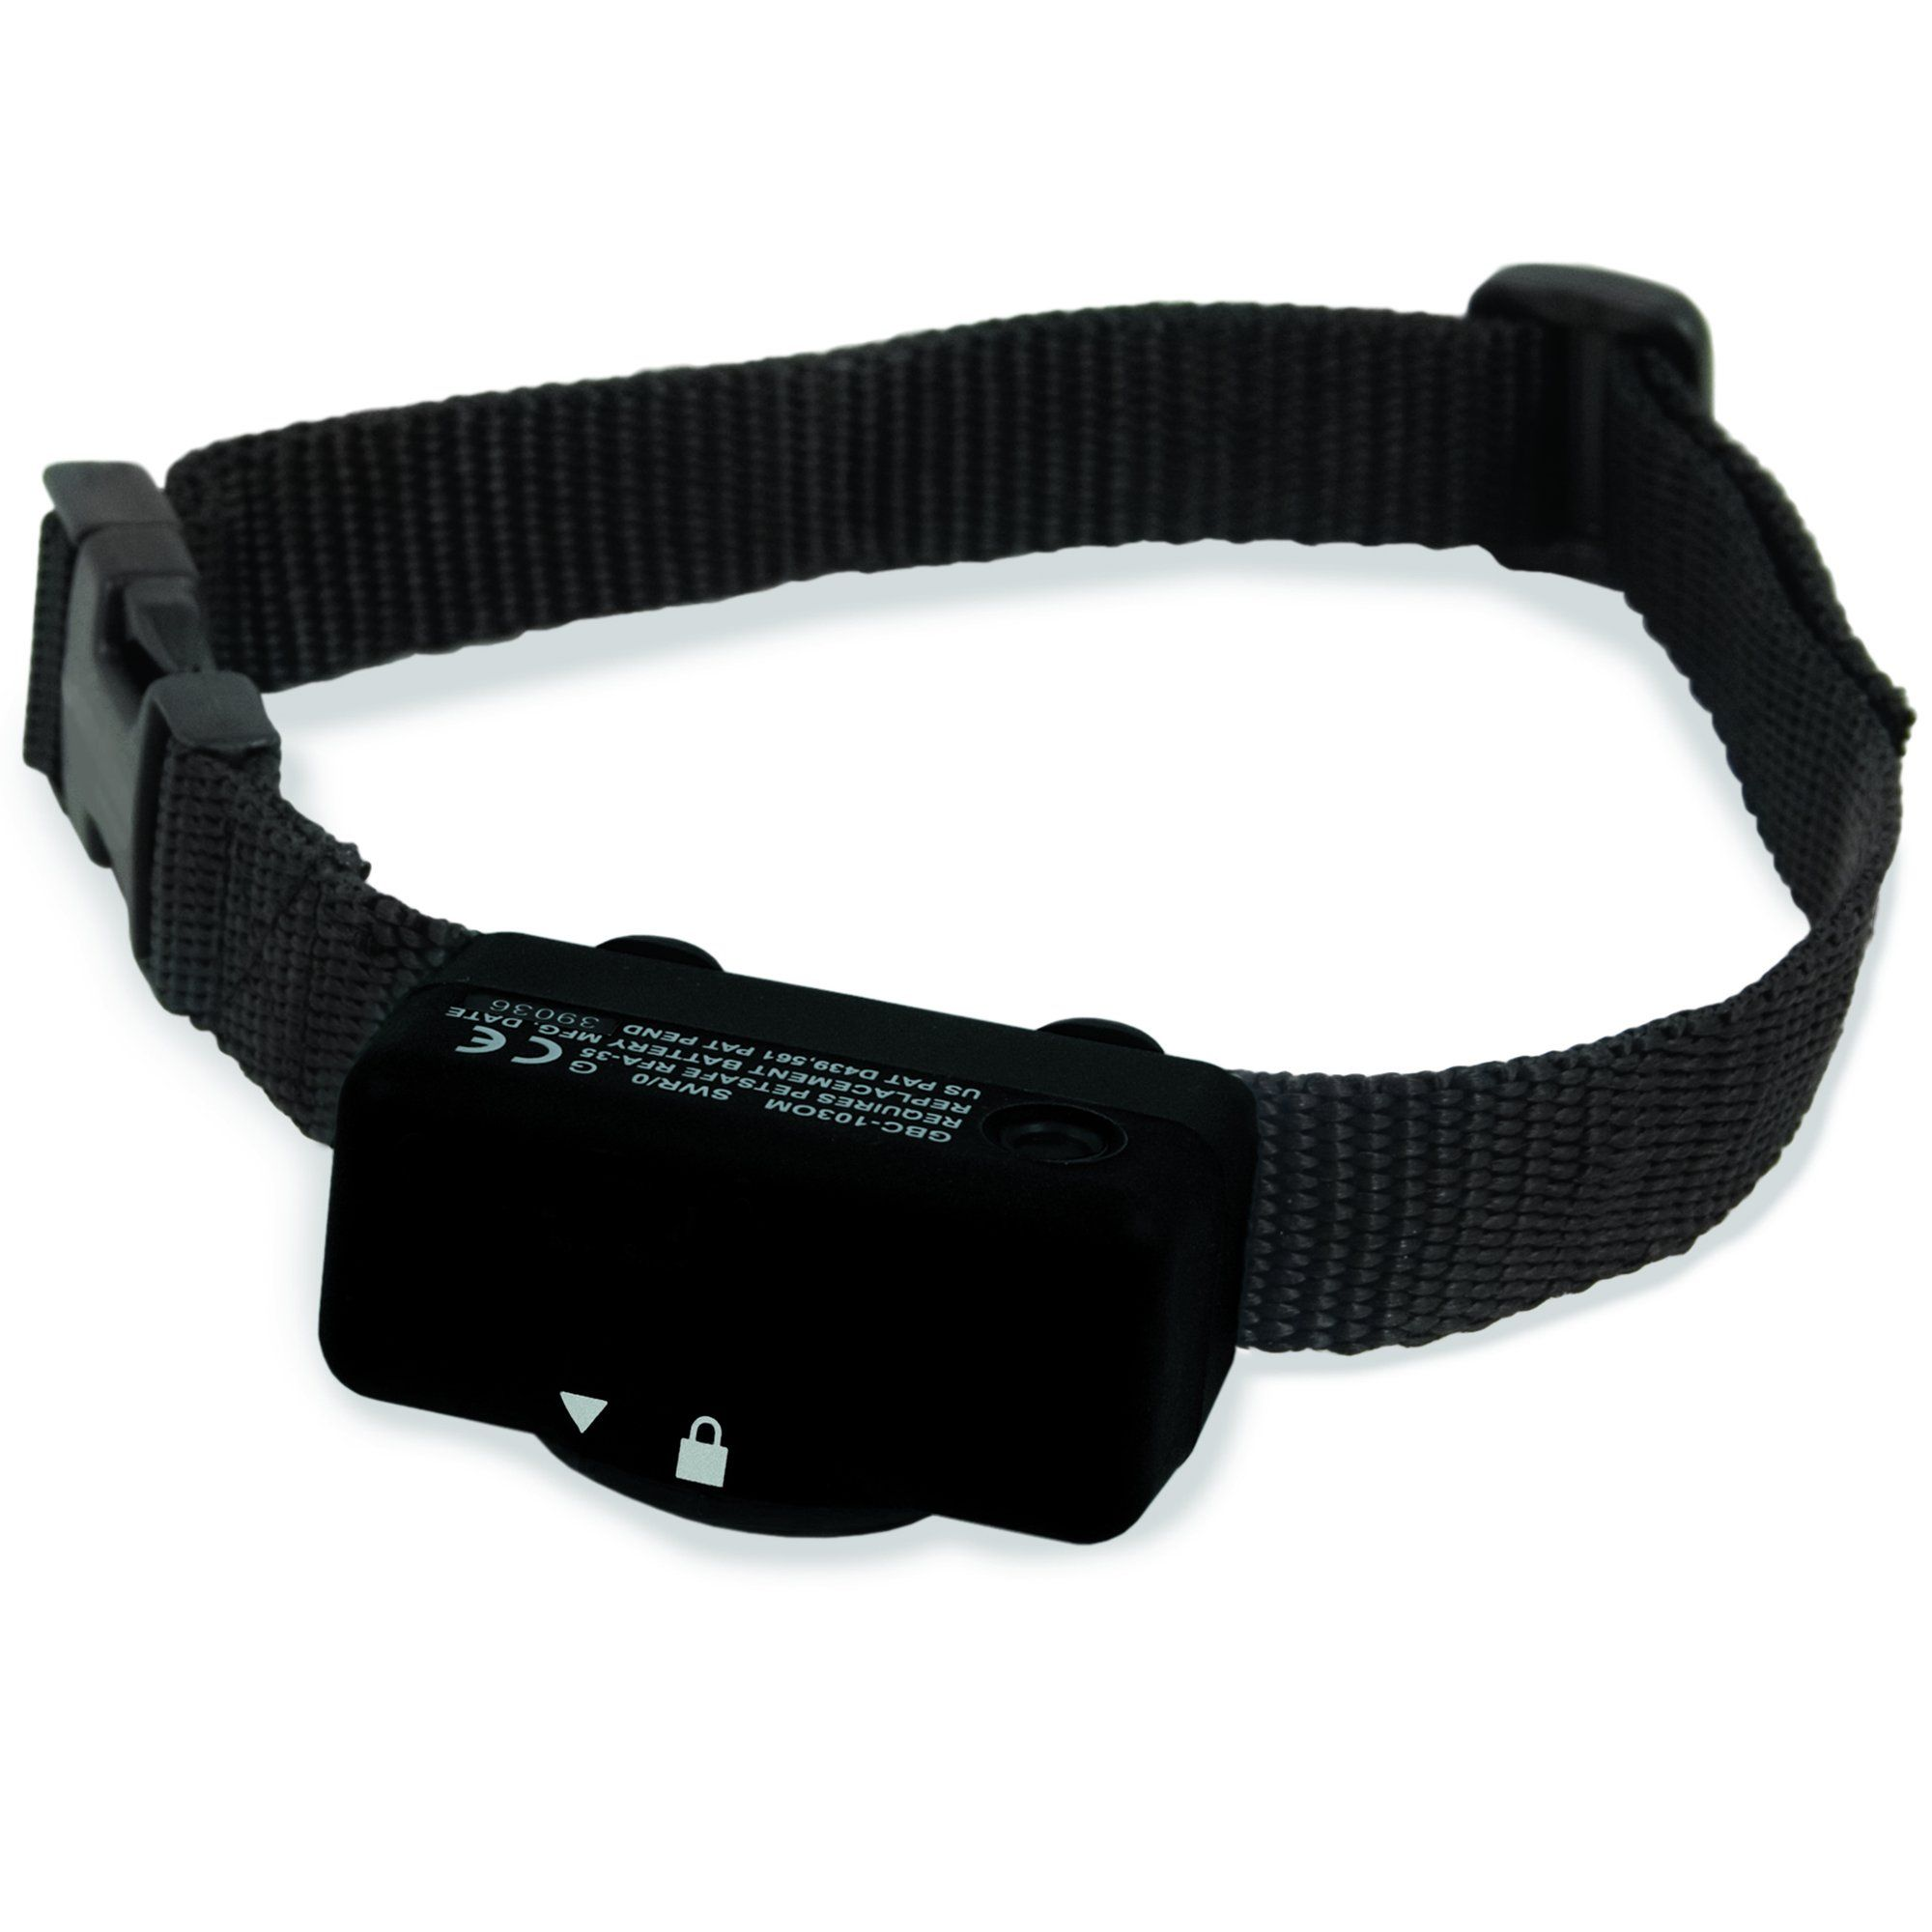 Petsafe Silent Dog Antibark Shock Collar Black Read More